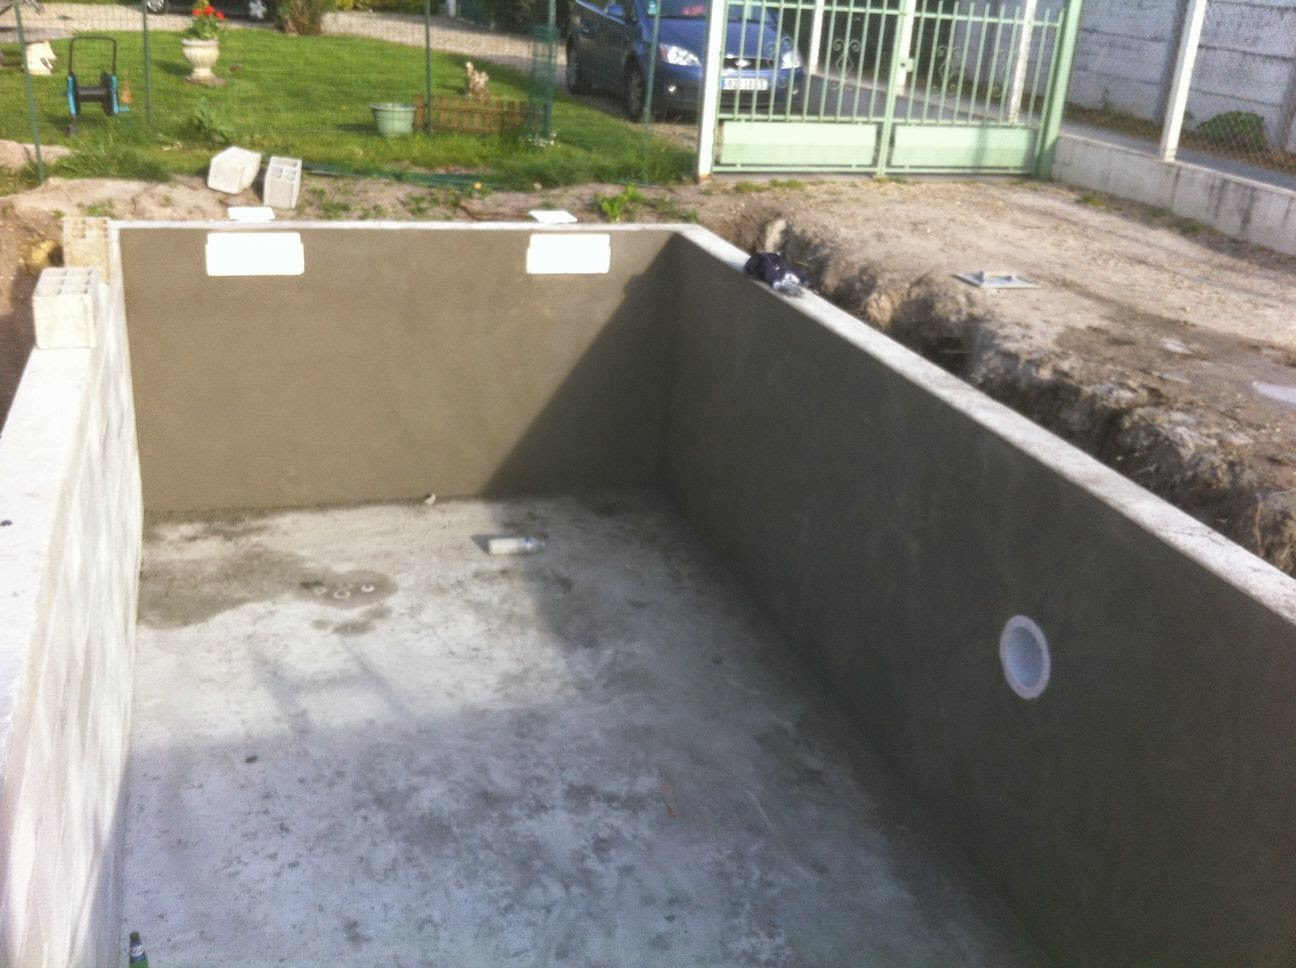 Projet tapes de construction d 39 une piscine en for Construction piscine 19